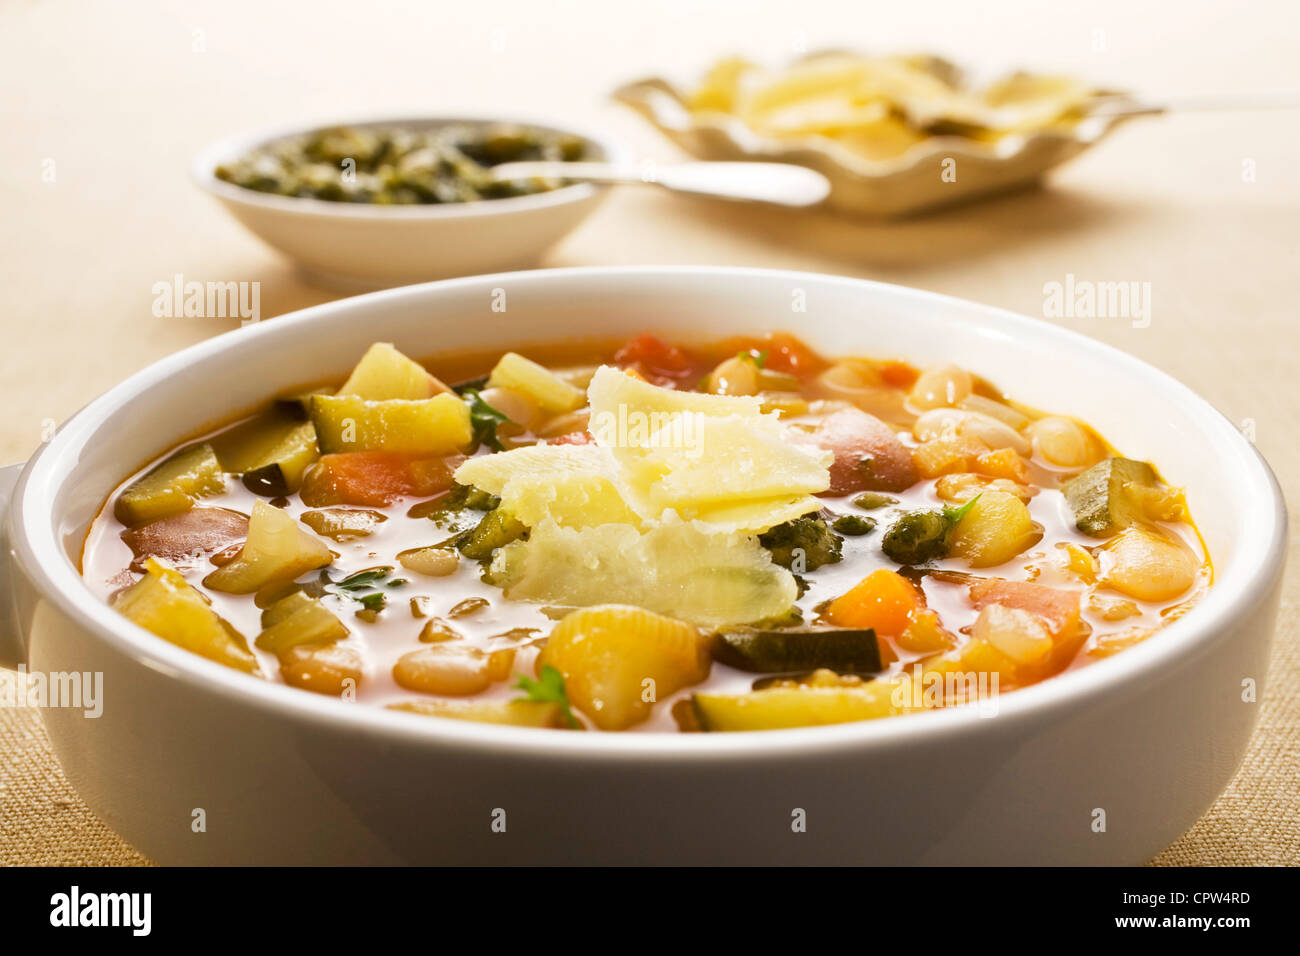 French vegetable soup, soupe au pistou, made from summer vegetables Stock Photo